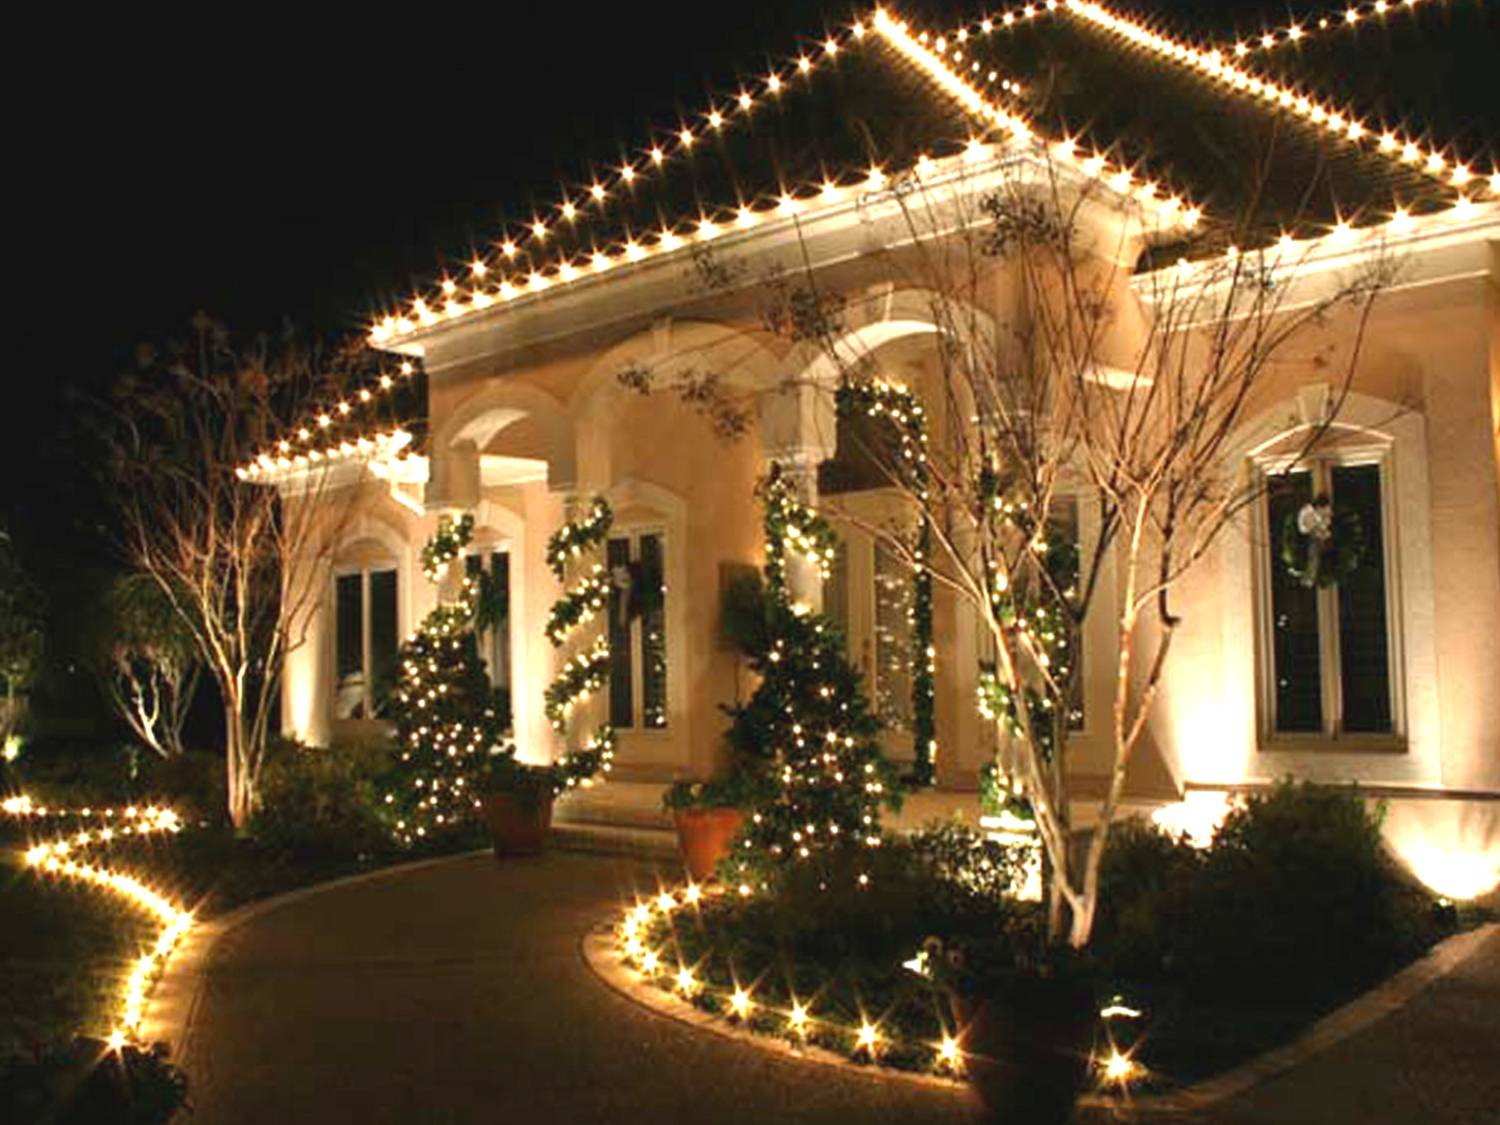 Christmas Decorating With Floodlights : Colorado homes and commercial properties become